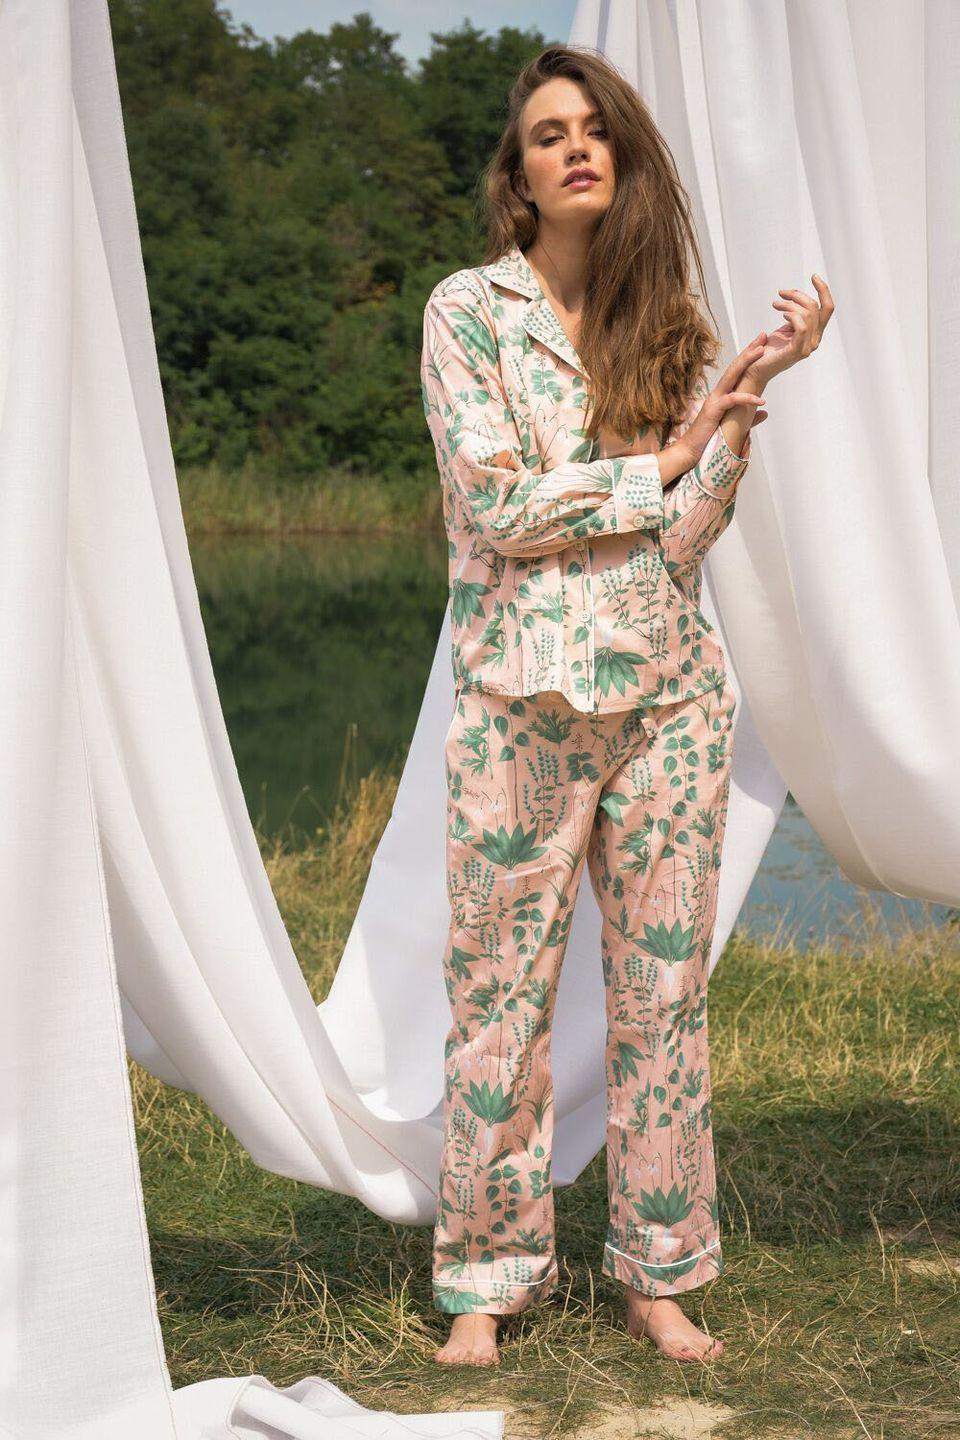 """<p><a class=""""link rapid-noclick-resp"""" href=""""https://phriya.com/"""" rel=""""nofollow noopener"""" target=""""_blank"""" data-ylk=""""slk:SHOP NOW"""">SHOP NOW</a></p><p>New label Phriya is inspired by the beautiful landscape of little-known Italian island Ponza. Styles have a luxe feel, from mother of pearl buttons and French seams to the hand-painted prints. There is also a focus on sustainable fabrics - the brand uses 100 per cent natural cotton and a fabrics supplier affiliated with one of the largest global sustainable cotton initiatives.<br></p>"""